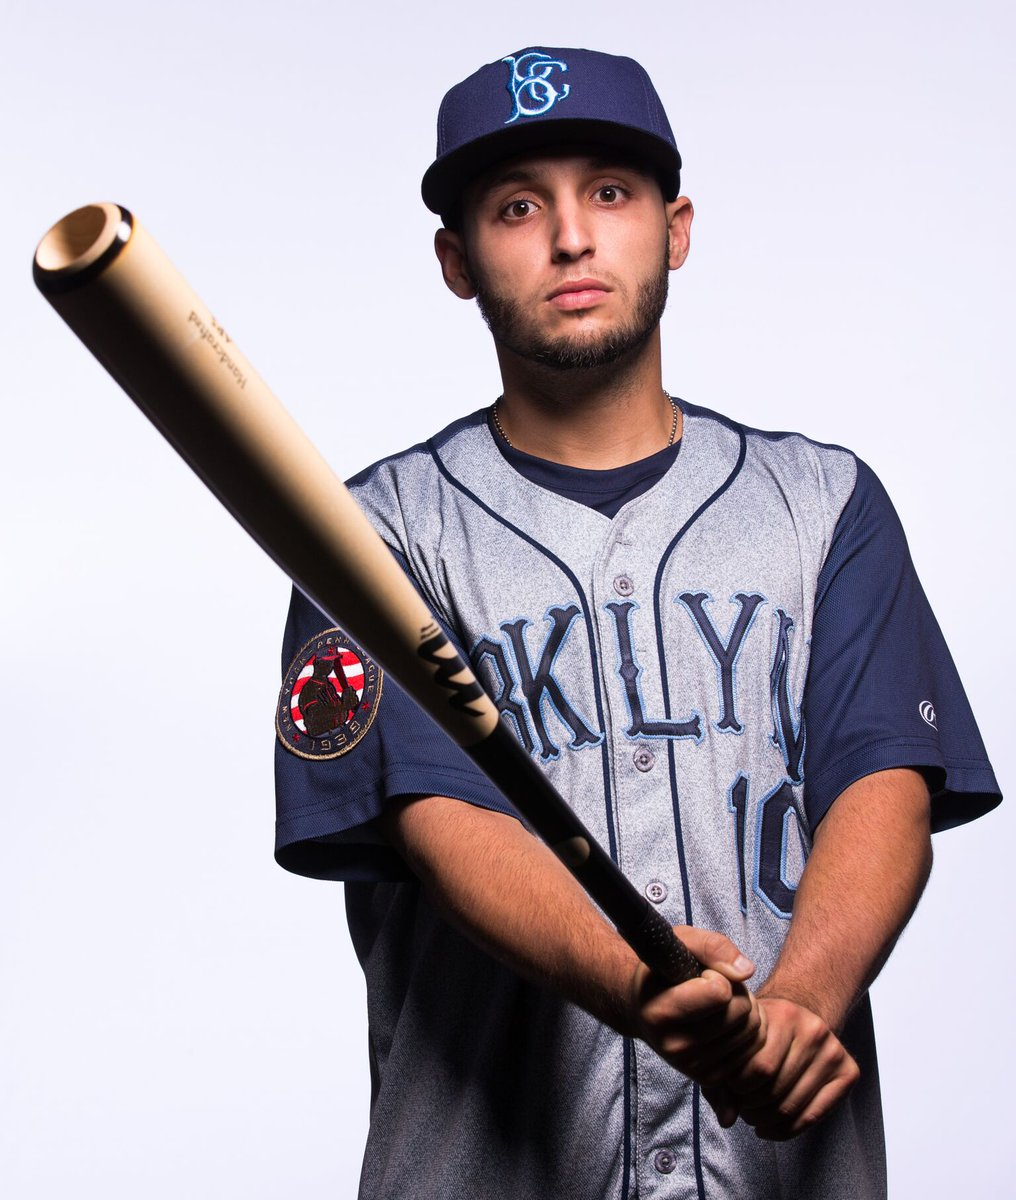 @GoCCUsports product Michael Paez blast his first pro home run to left field. BKLYN leads 3-0 in the top of the 7th https://t.co/e48qXHn6NW